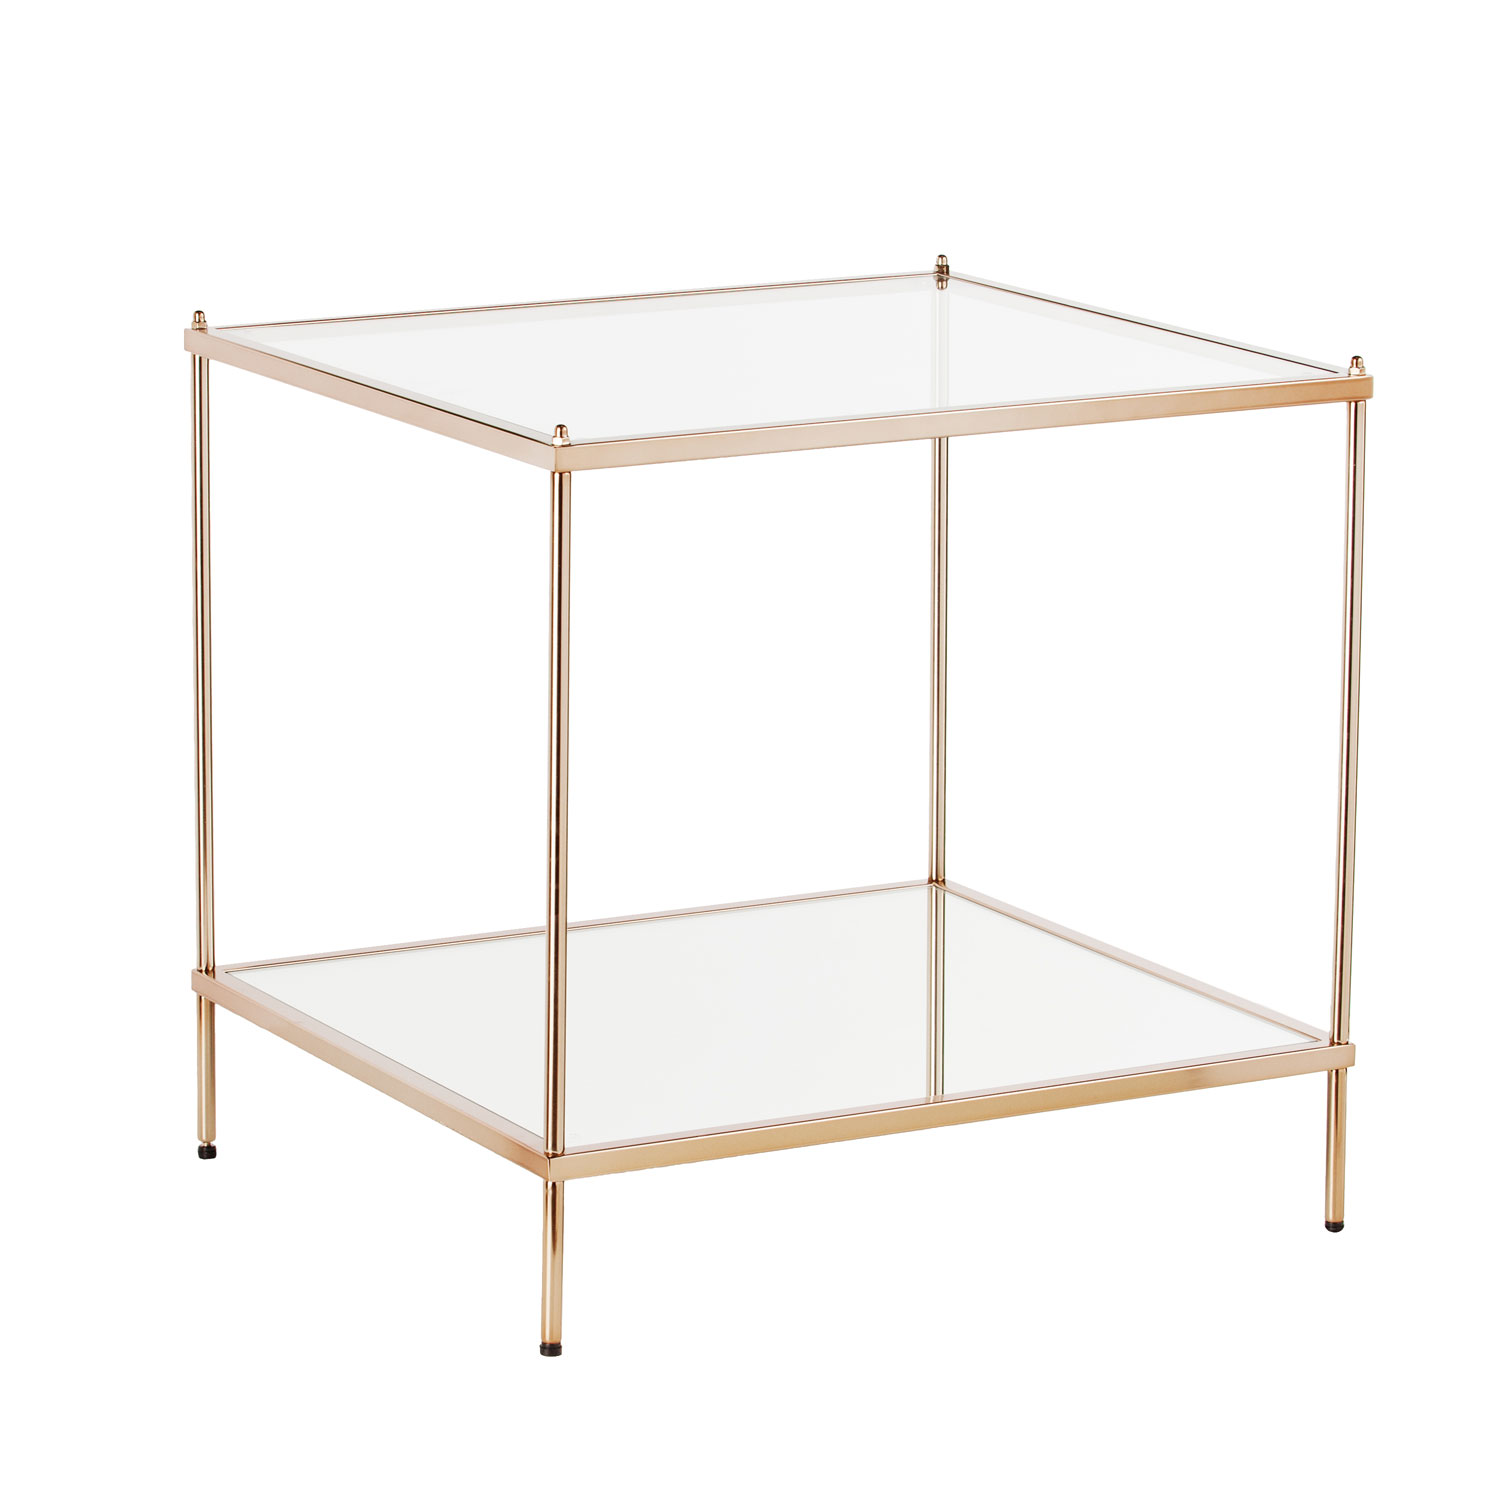 southern enterprises knox end table bellacor accent hover zoom living room furniture coffee tables silver entryway target threshold curtains swing sets wood console cabinet